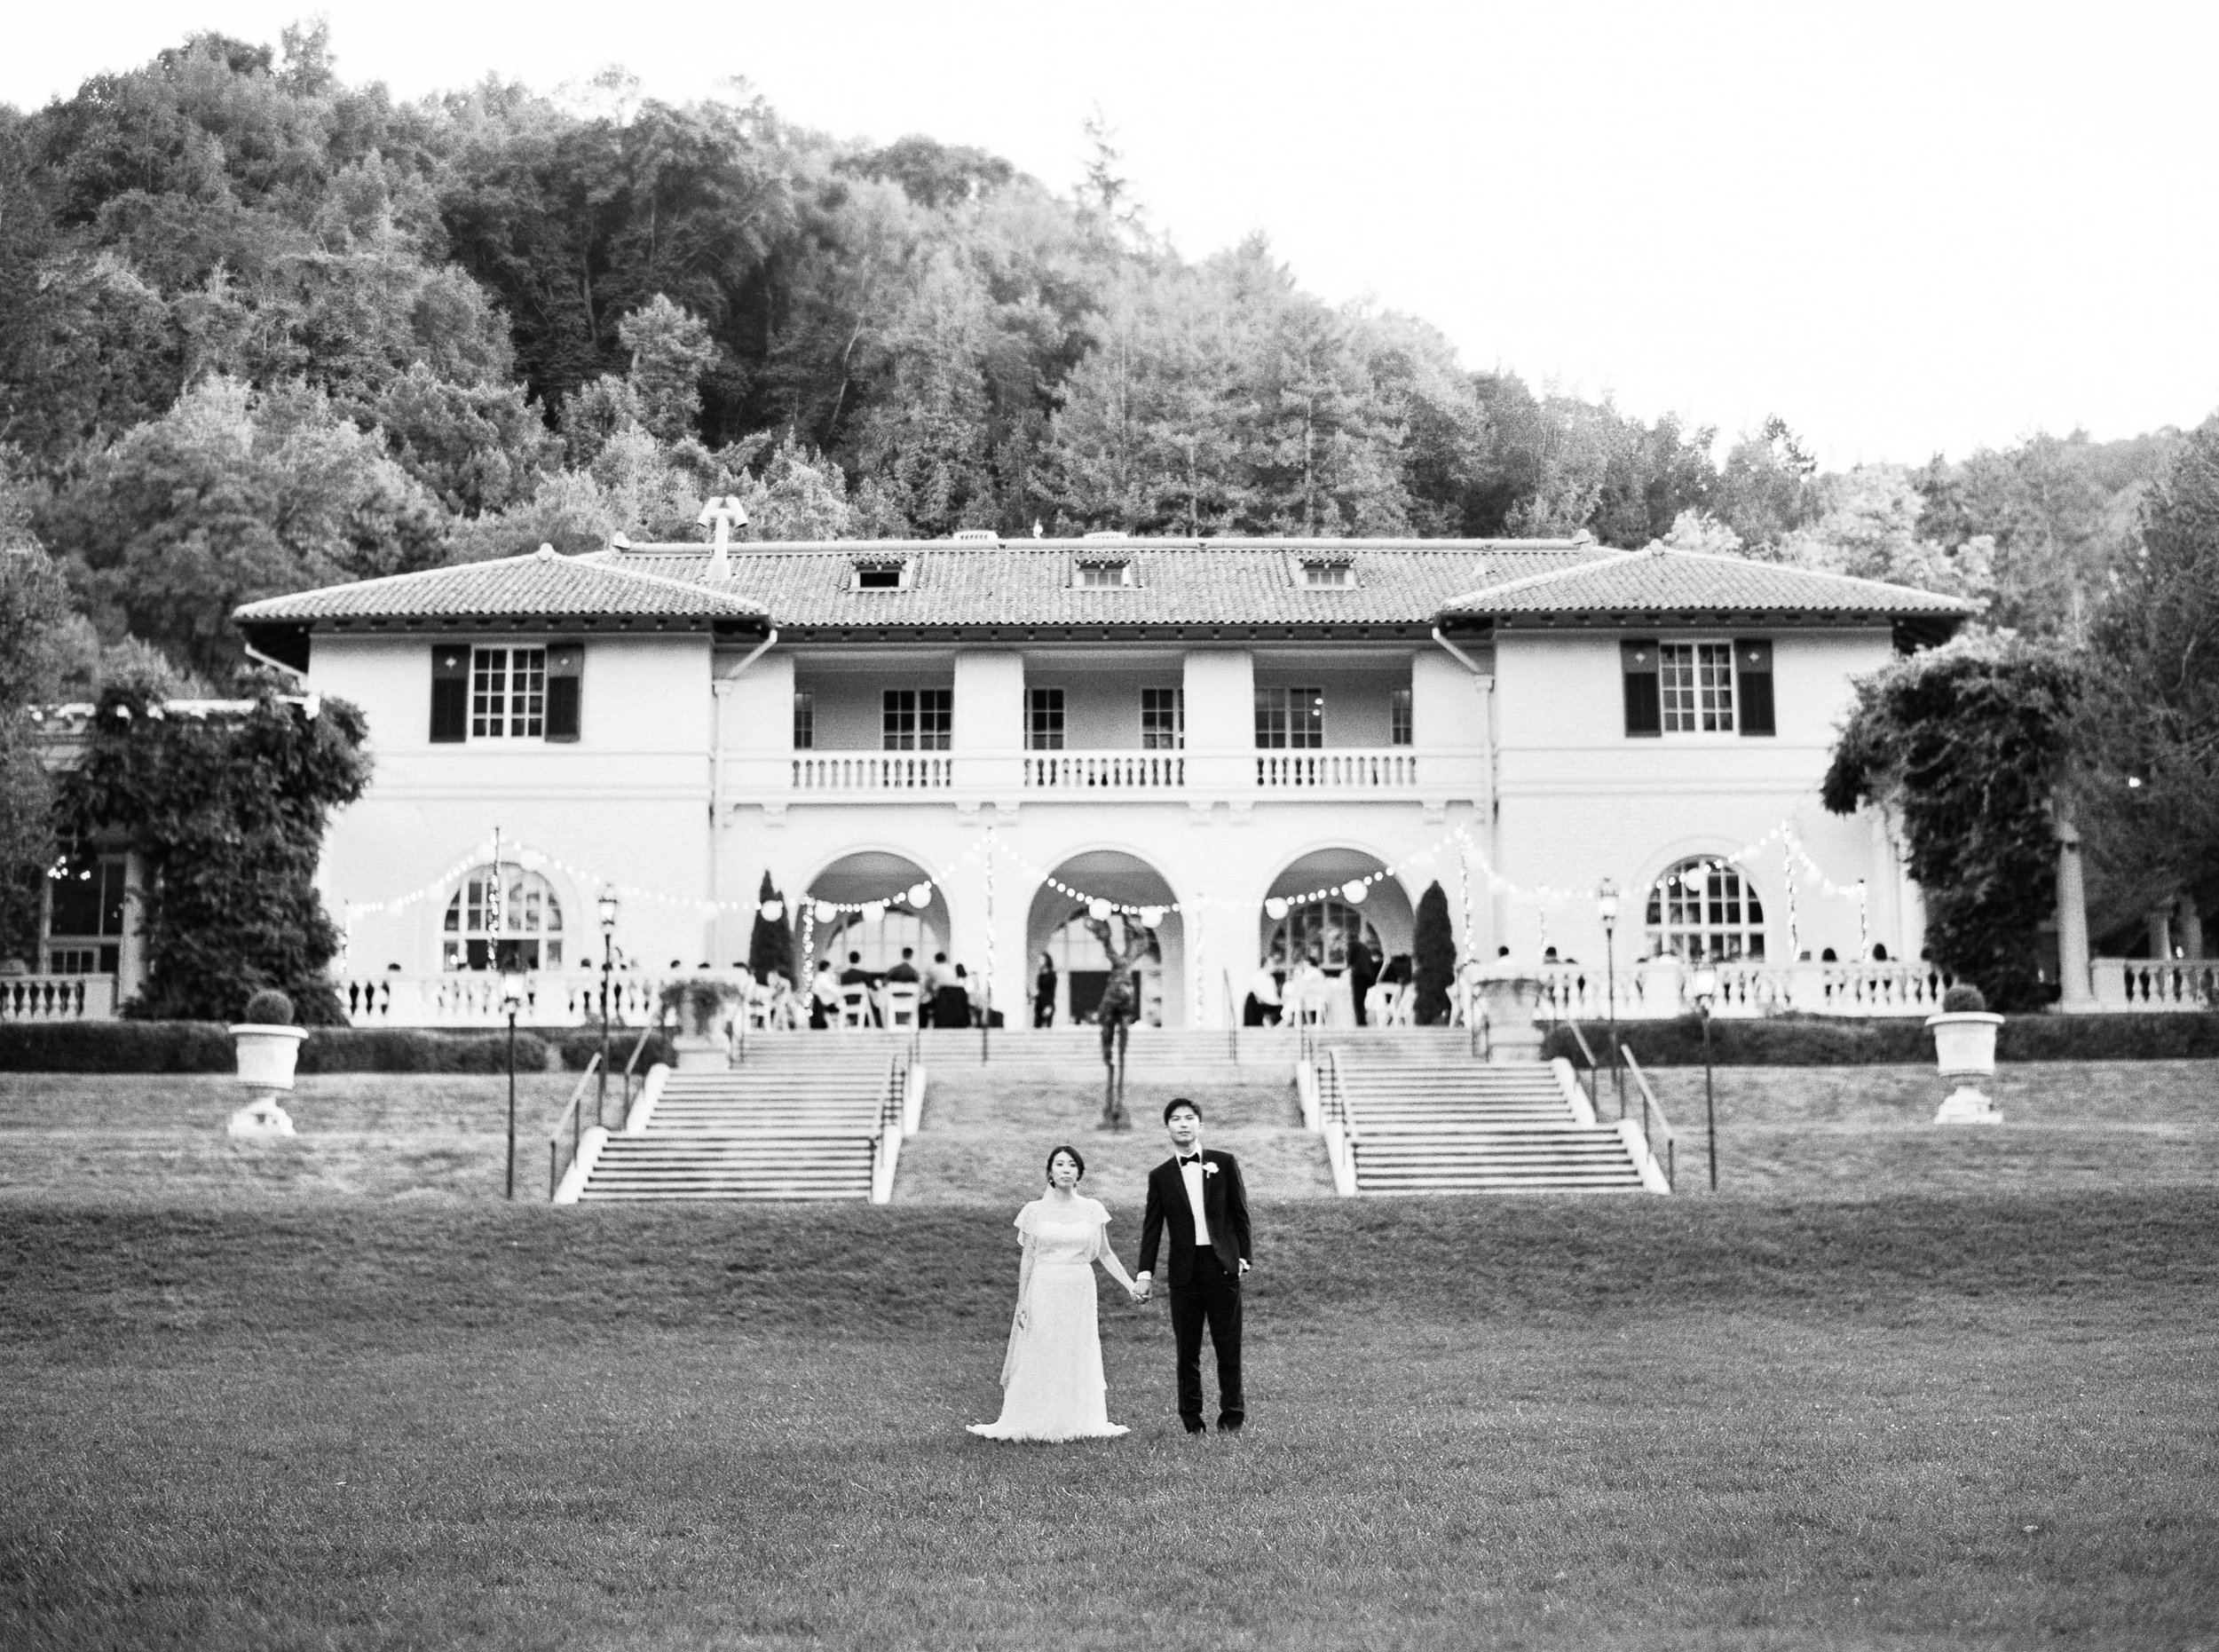 Villa_Montalvo_Wedding_Photographer_Videographer_San_Francisco193.jpg